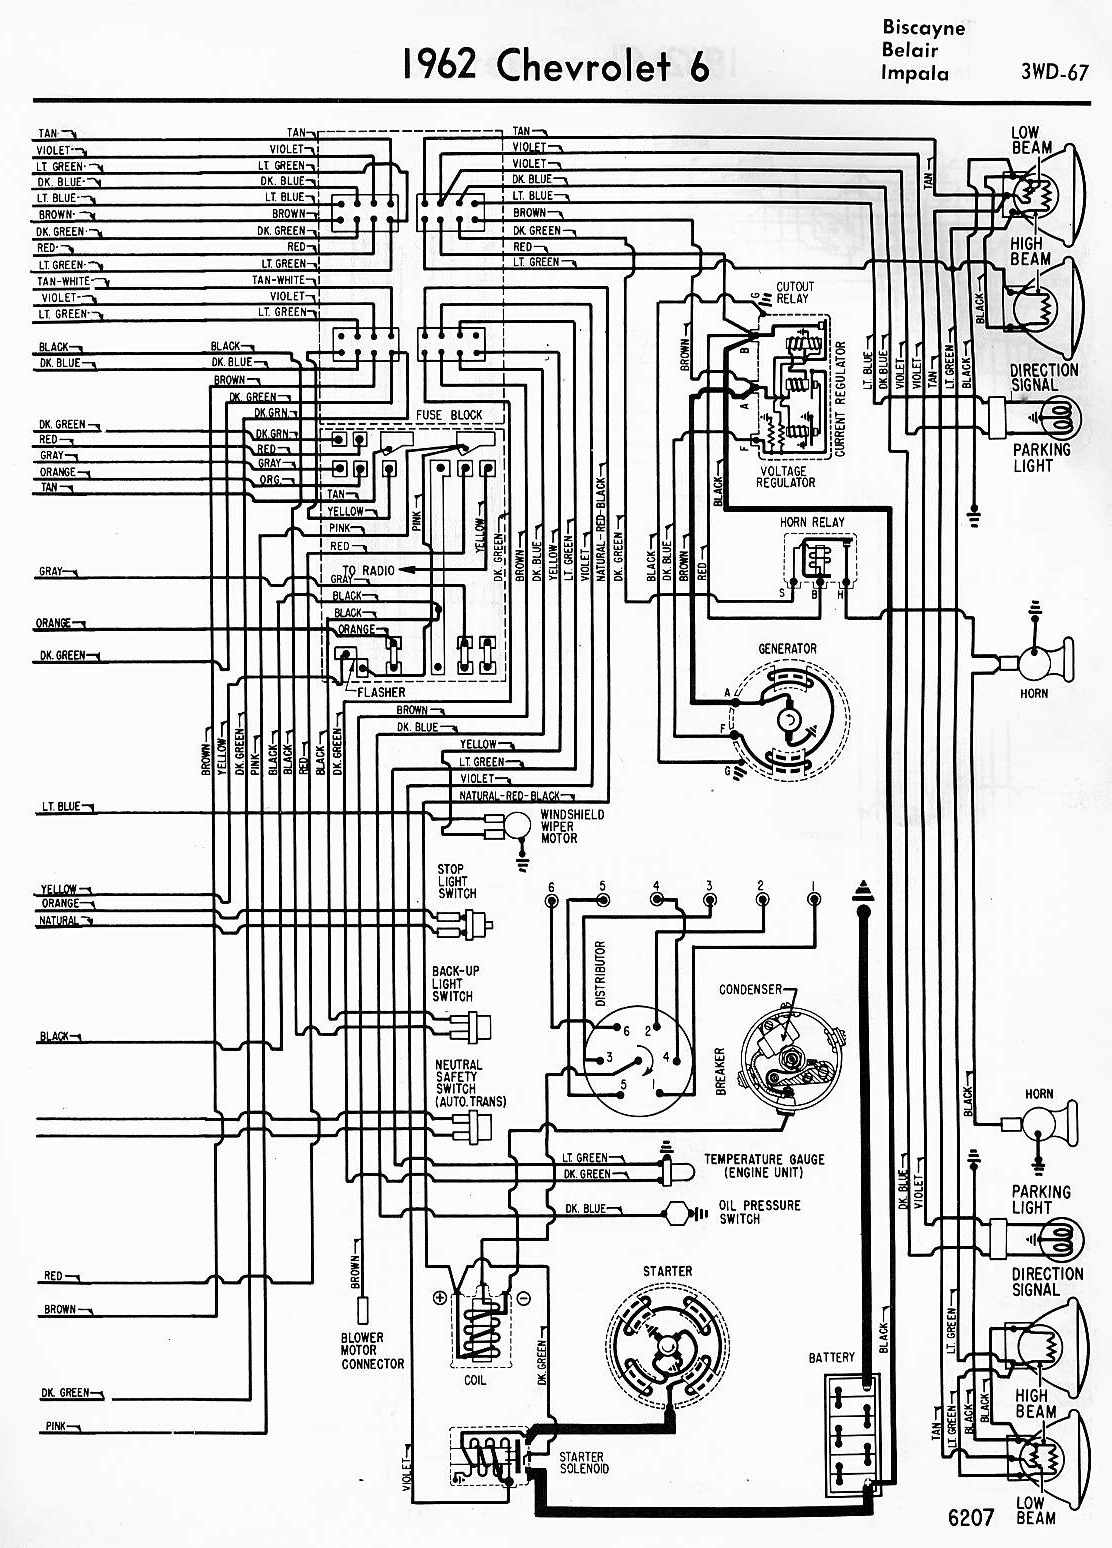 Electrical+Wiring+Diagram+Of+1964+Chevrolet+6 2011 impala wiring diagram 2005 impala ignition wiring diagram Universal Wiper Motor Wiring Diagram at bayanpartner.co